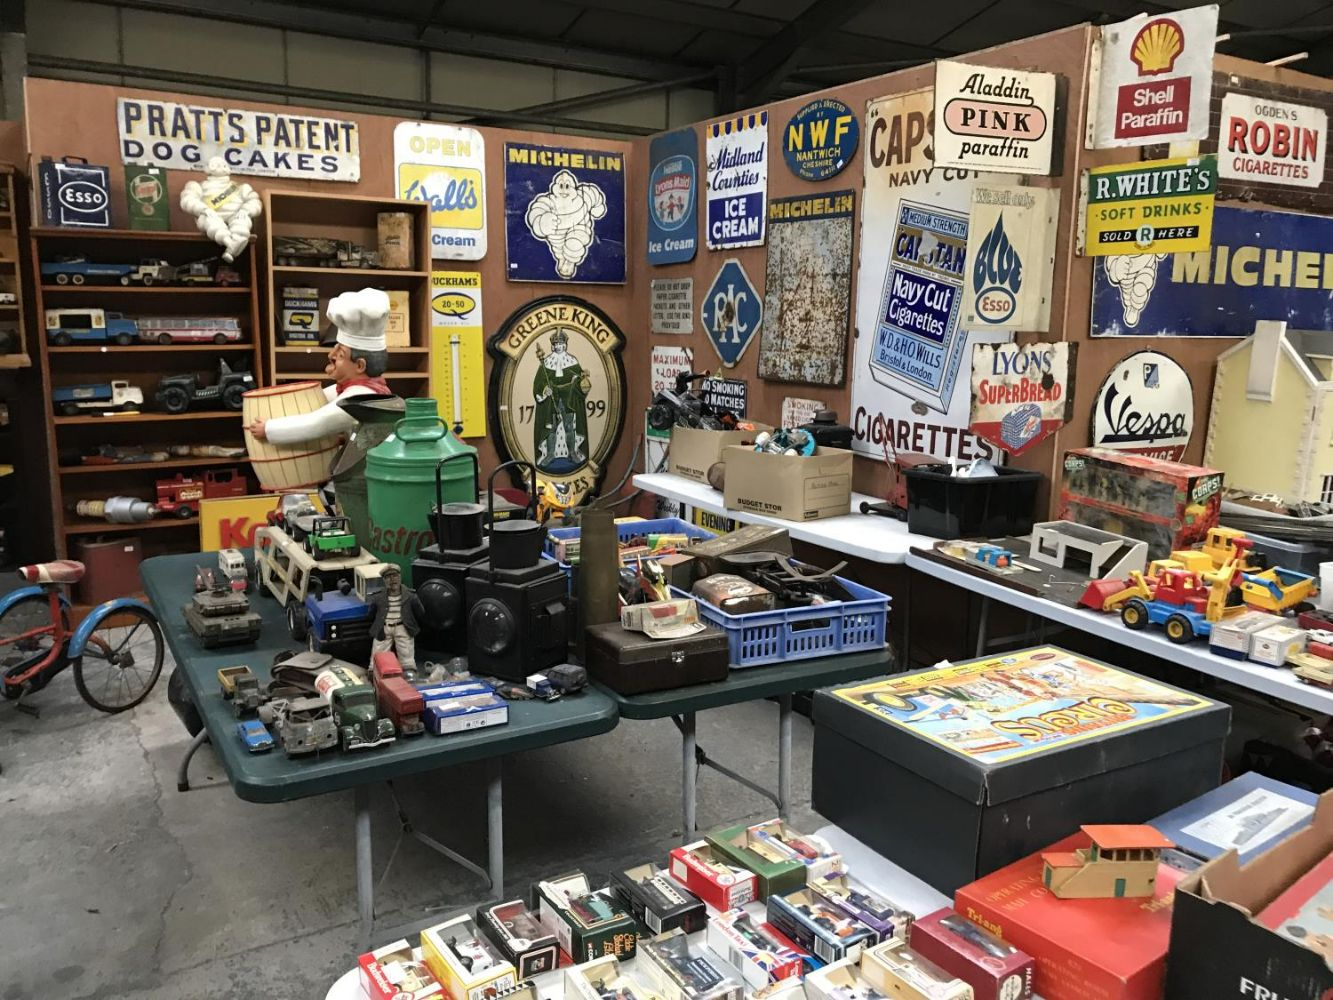 Two Day Auction Of Collectables, Antiques, Furniture, Vintage Items - with a special section for Militaria